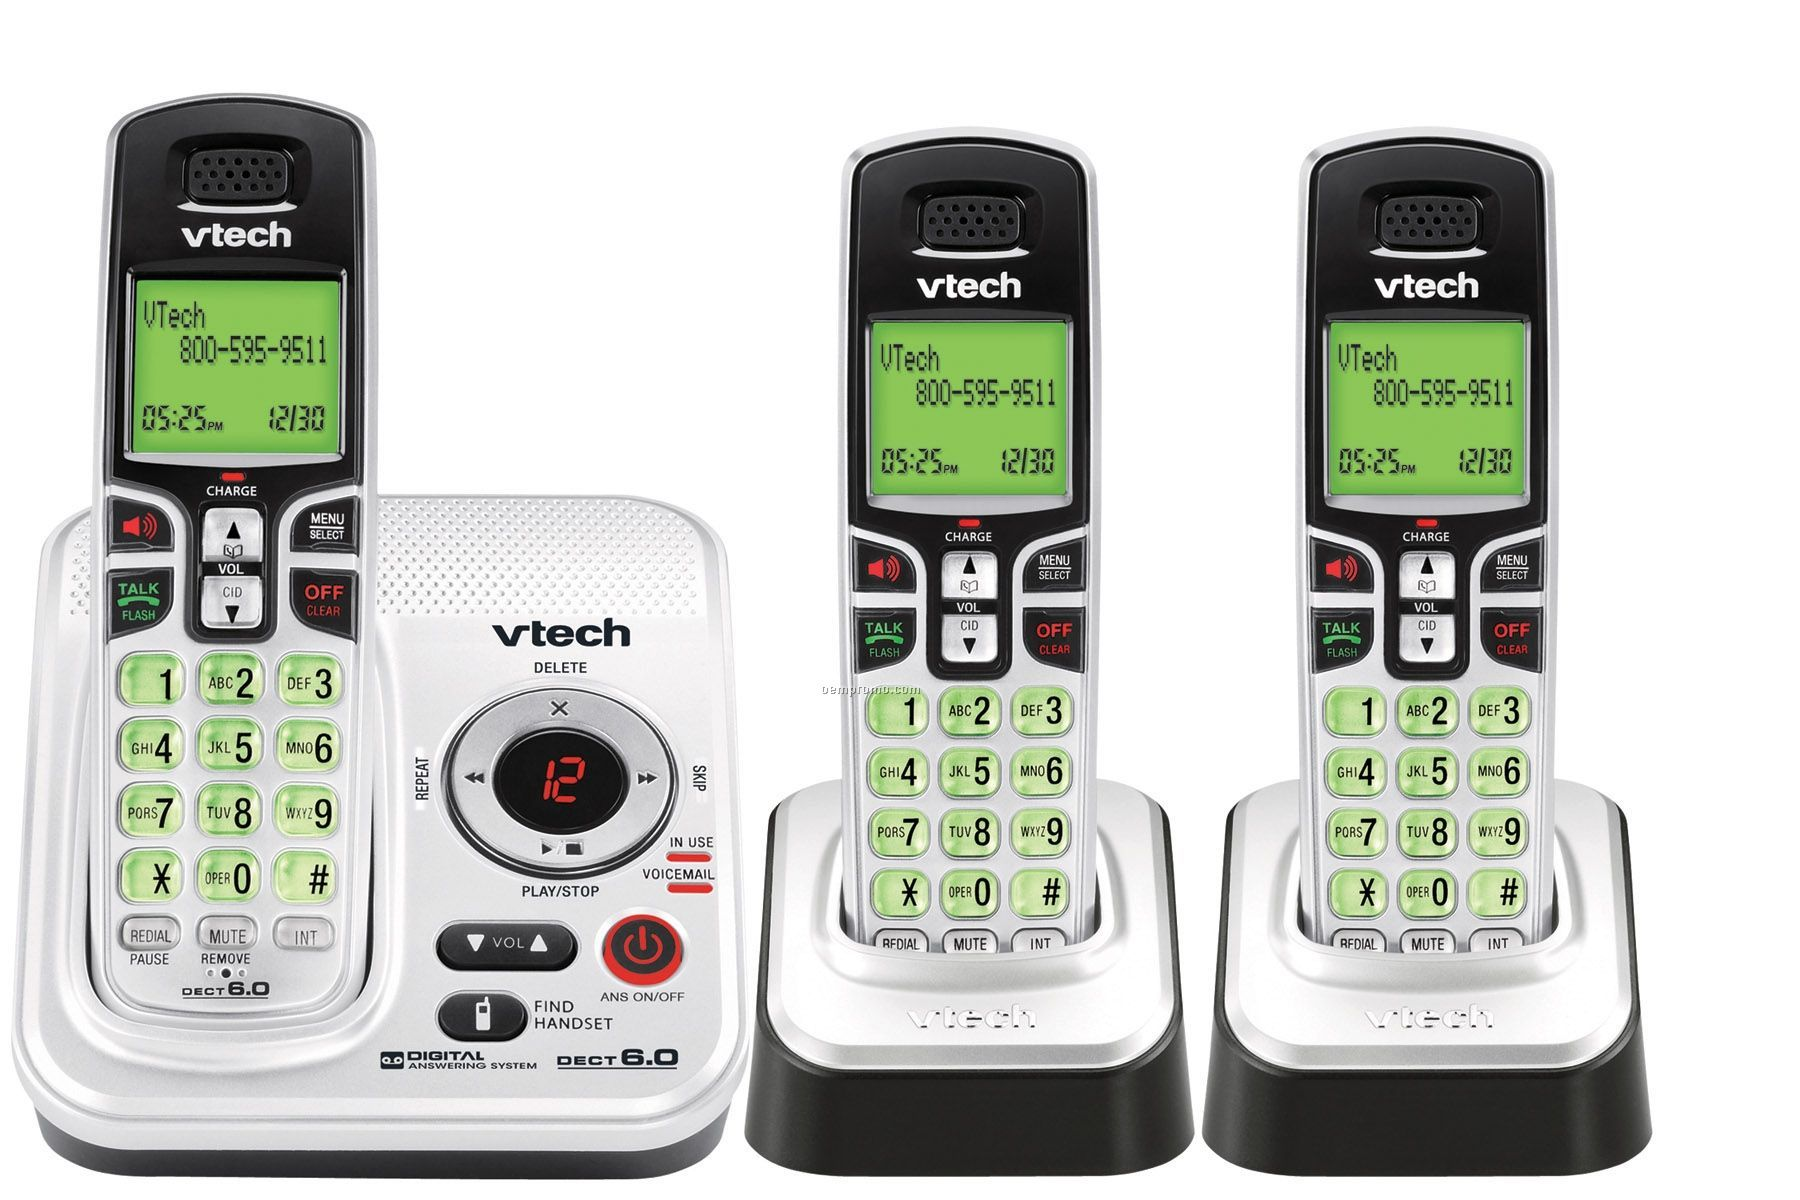 Vtech Expandable Dect 6.0 Cordless Phone System W/ 3 Handsets